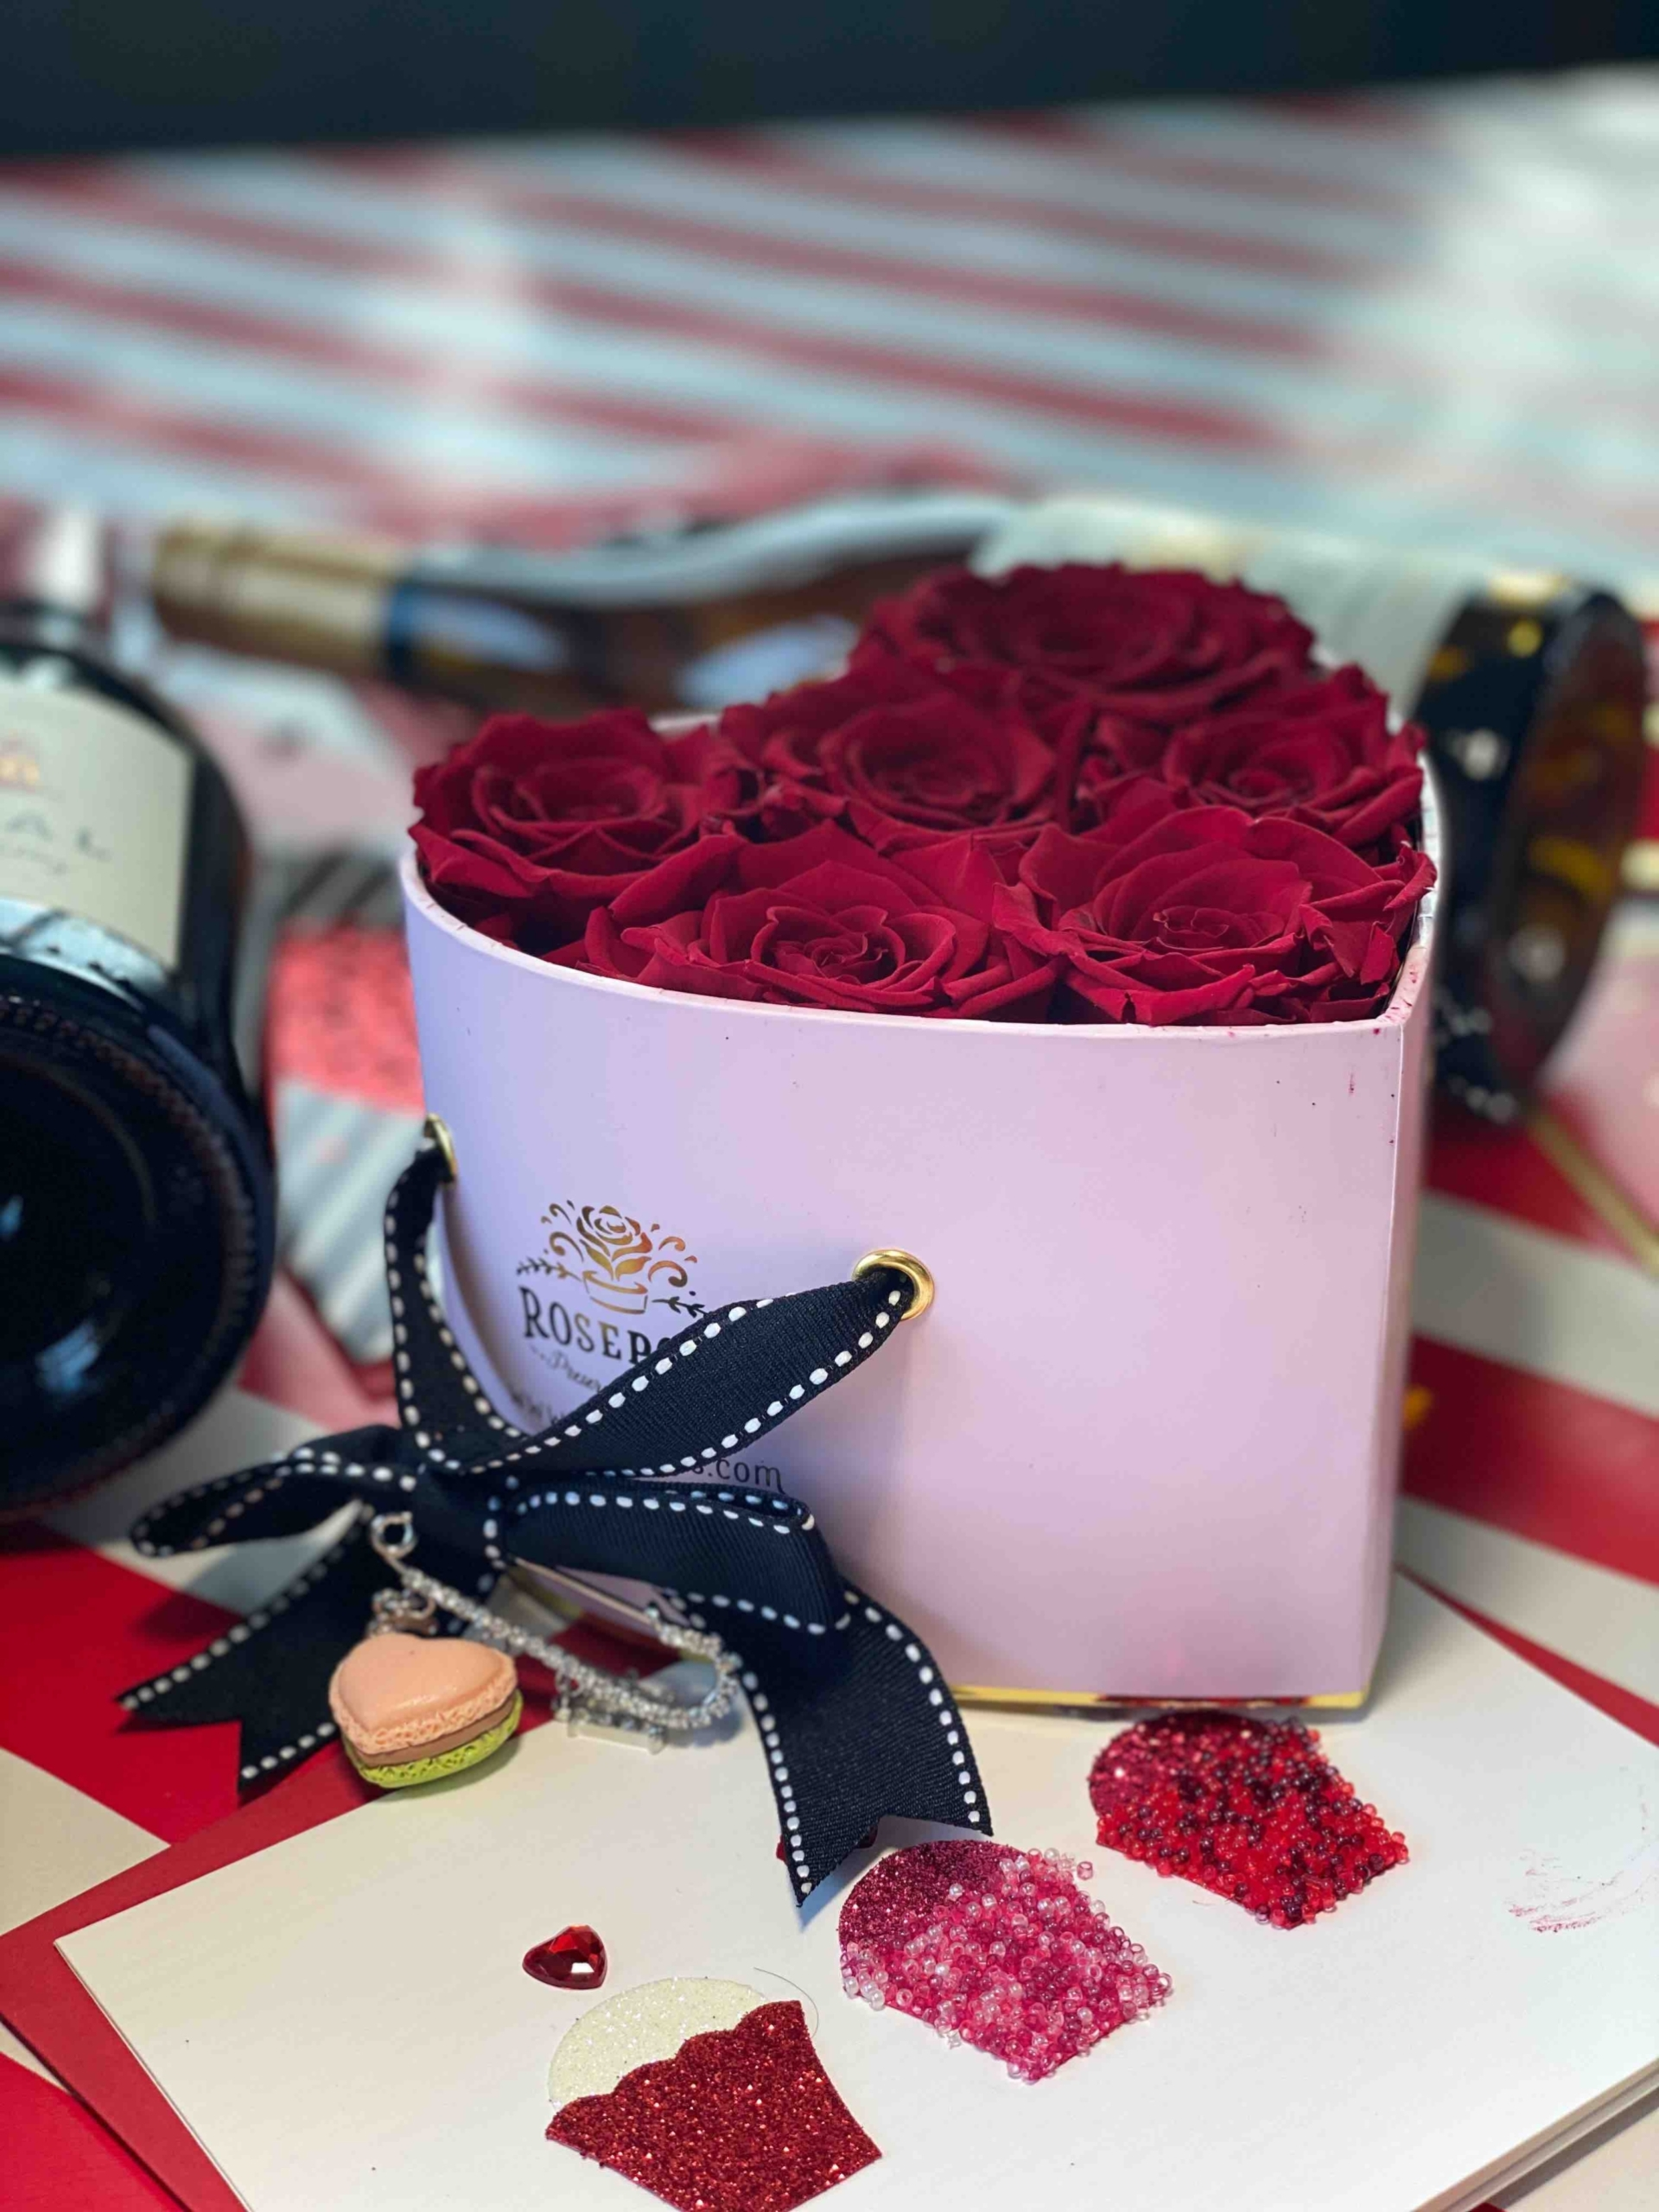 Rose Pops Are Rated Top Things To Do This Valentine's Day At Home To Make It Romantic & Memorable